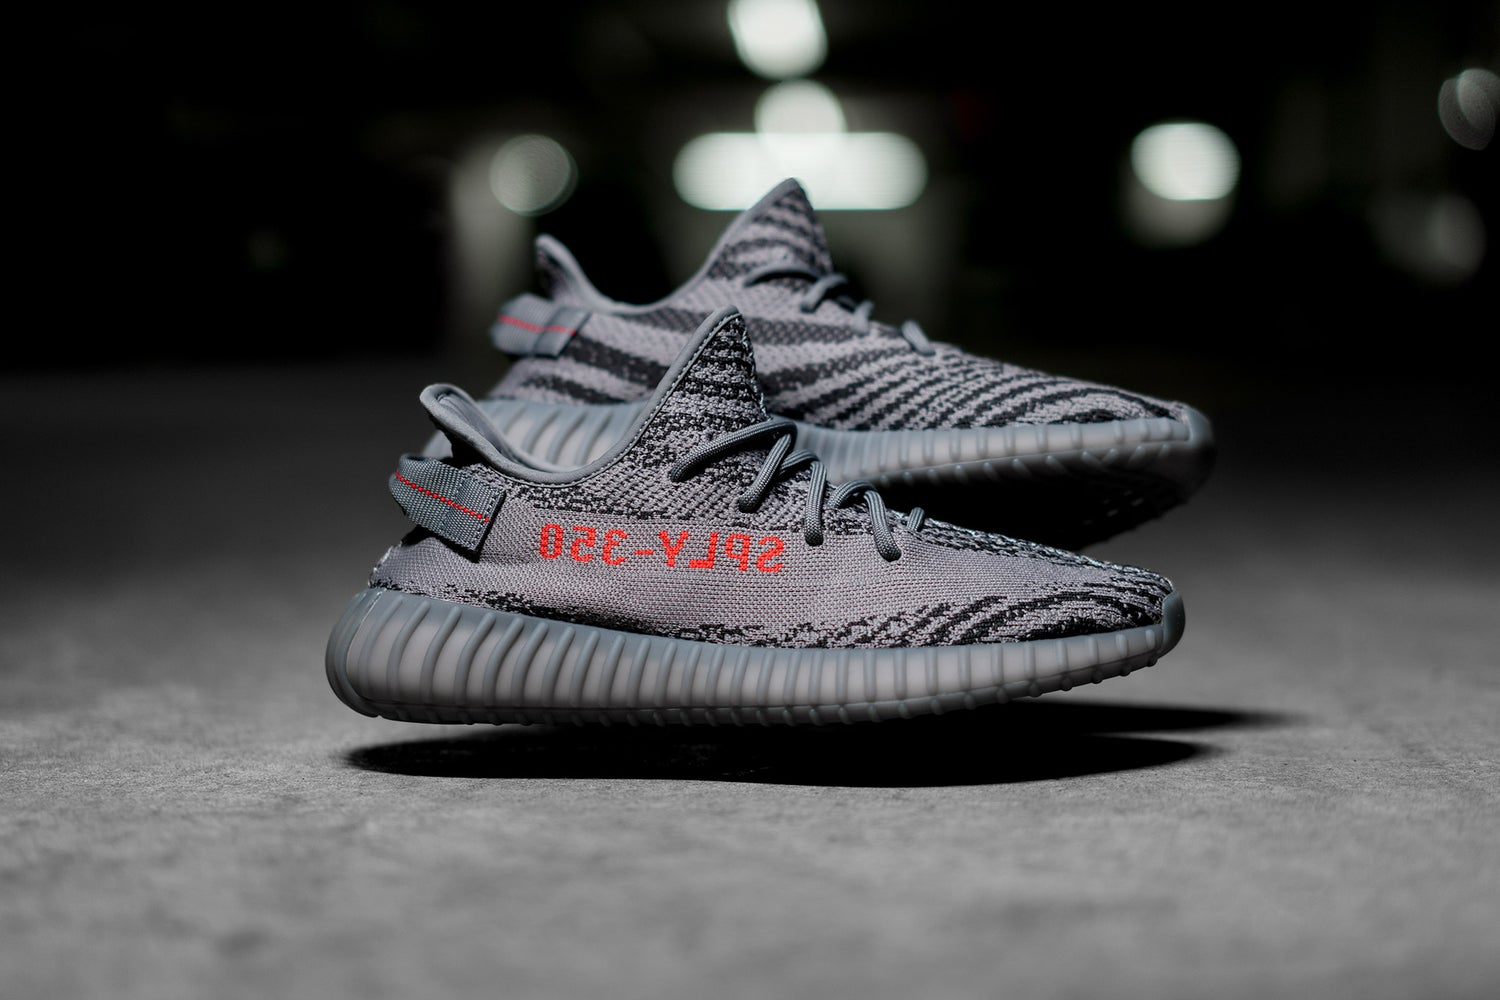 low priced cabb6 6dd83 Adidas Yeezy Boost v2 350 beluga 2.0